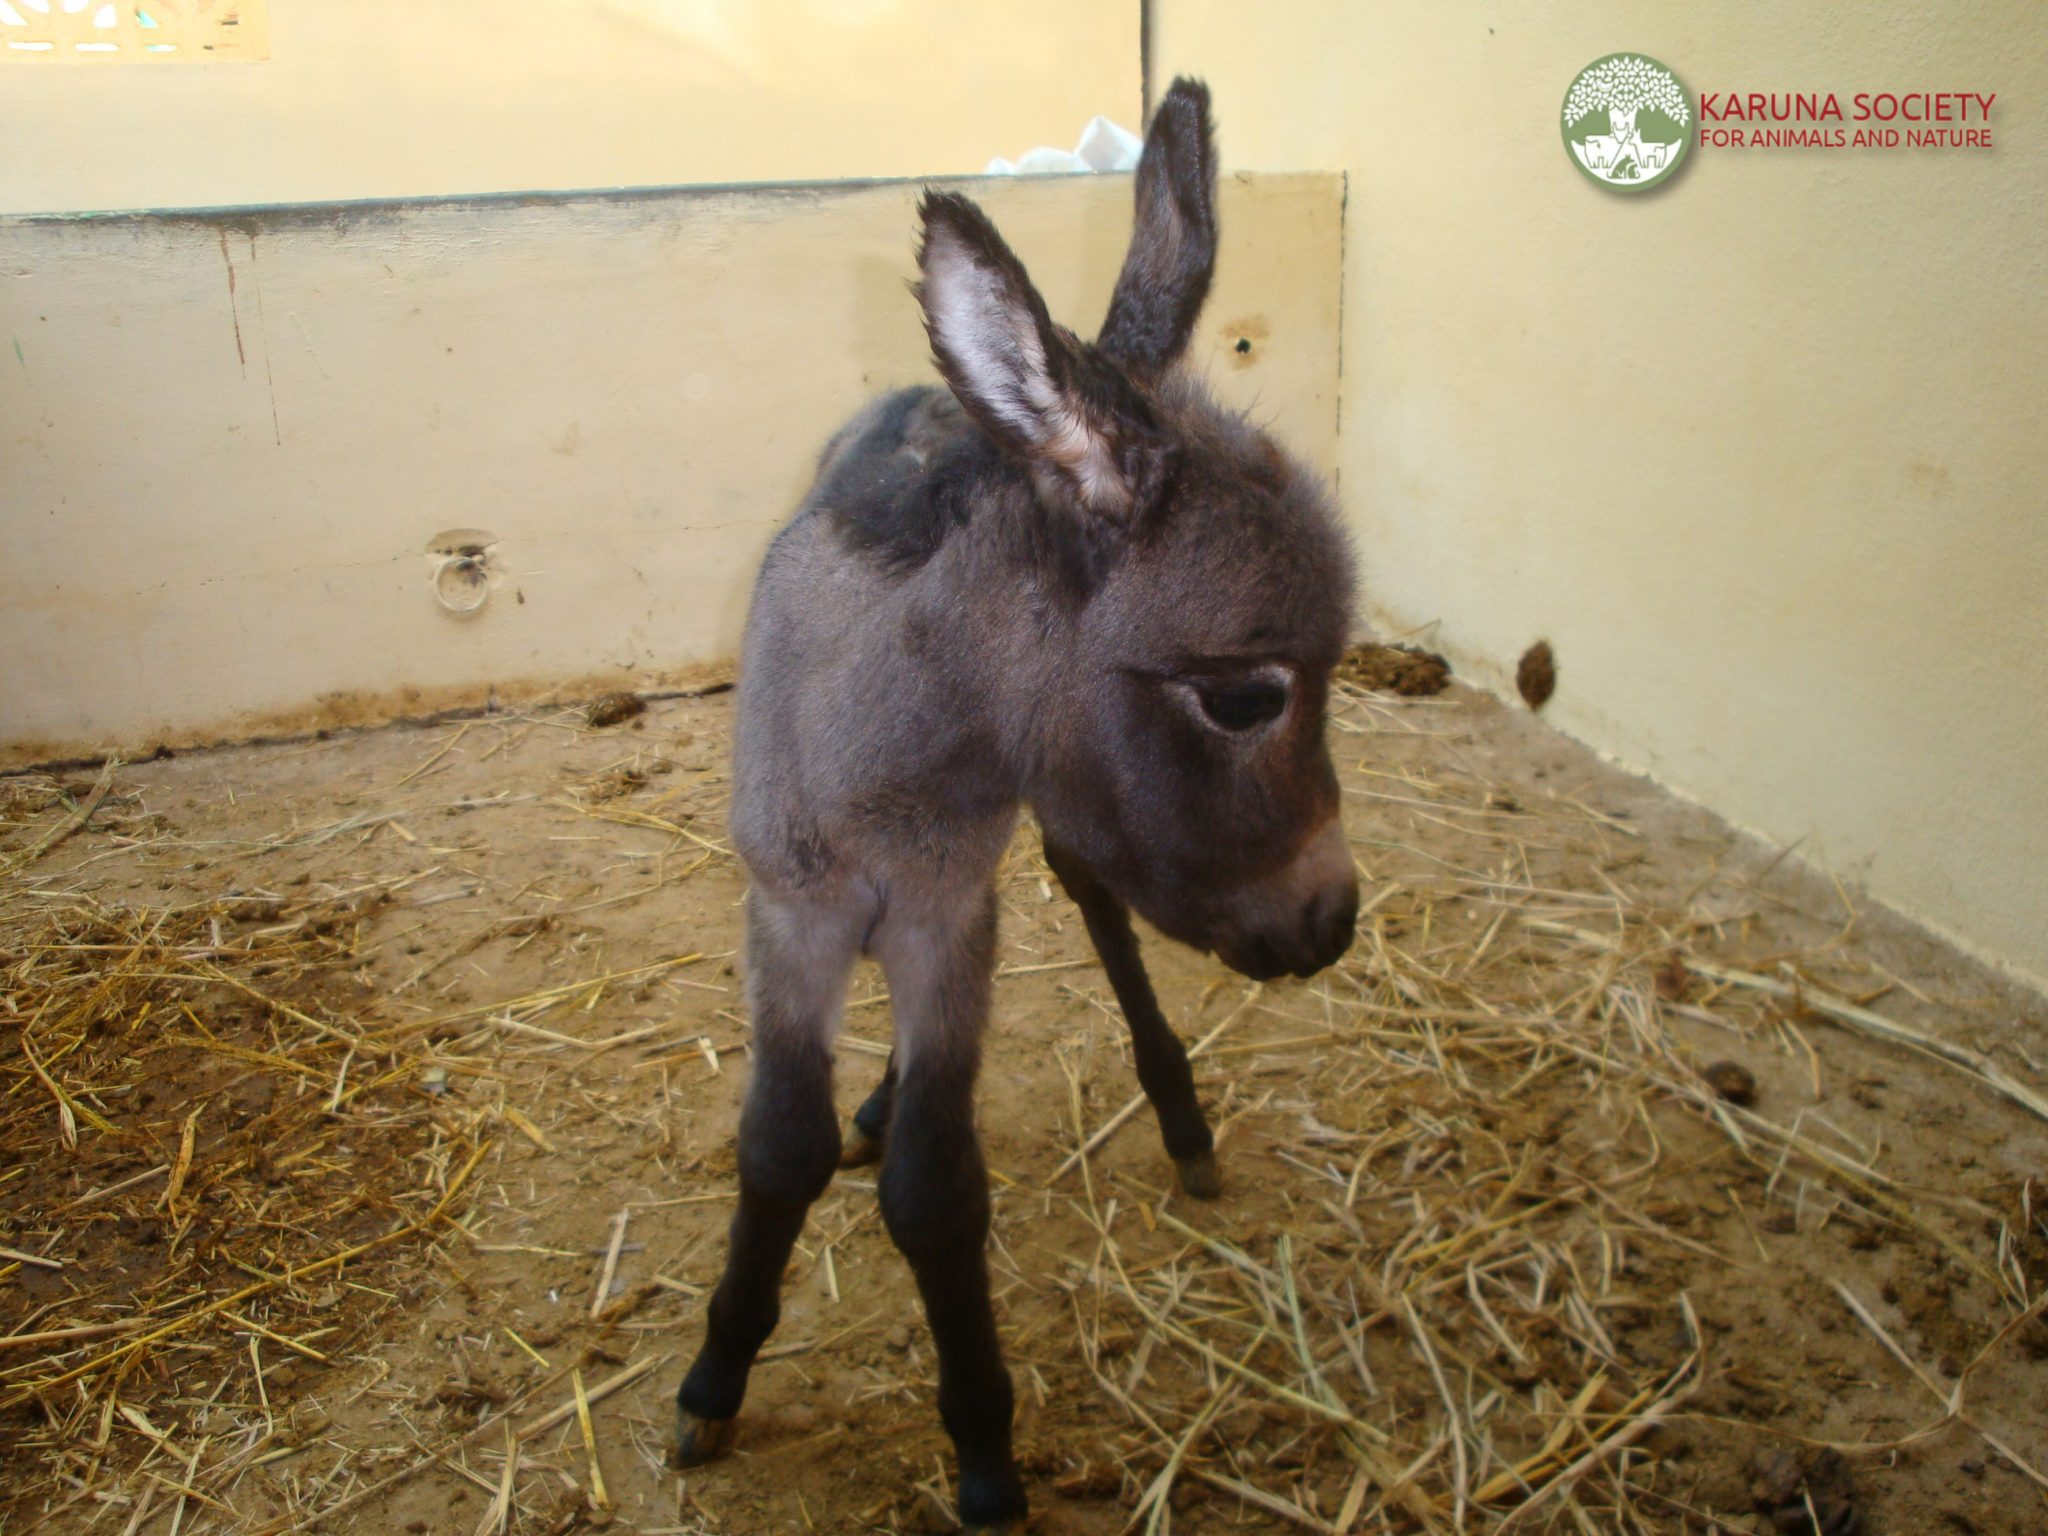 Disabled Donkey With Baby Karuna Society For Animals And Nature